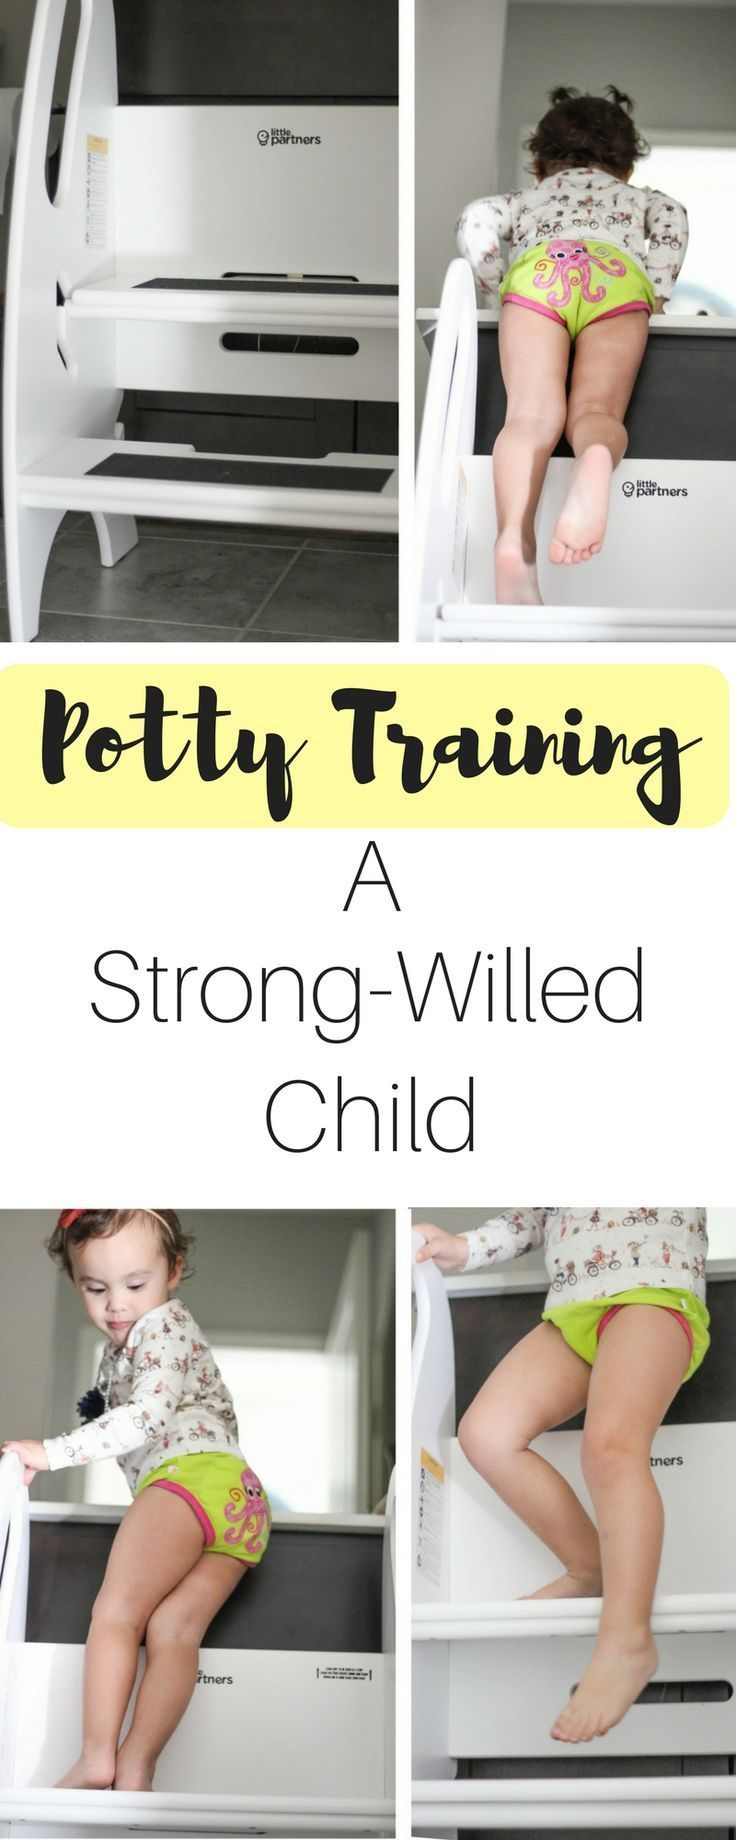 Potty Training A Strong Willed Child   Potty Training A difficult child   Potty Training a Toddler   Potty Training a 2 year old   How to potty train   All The Tricks of Potty Training   Best Potty Training pulls ups, undies and training pants (AD) Little Partners   Best Step Stool   Potty Training Tips   Best way to potty train a toddler #babytrainingpants